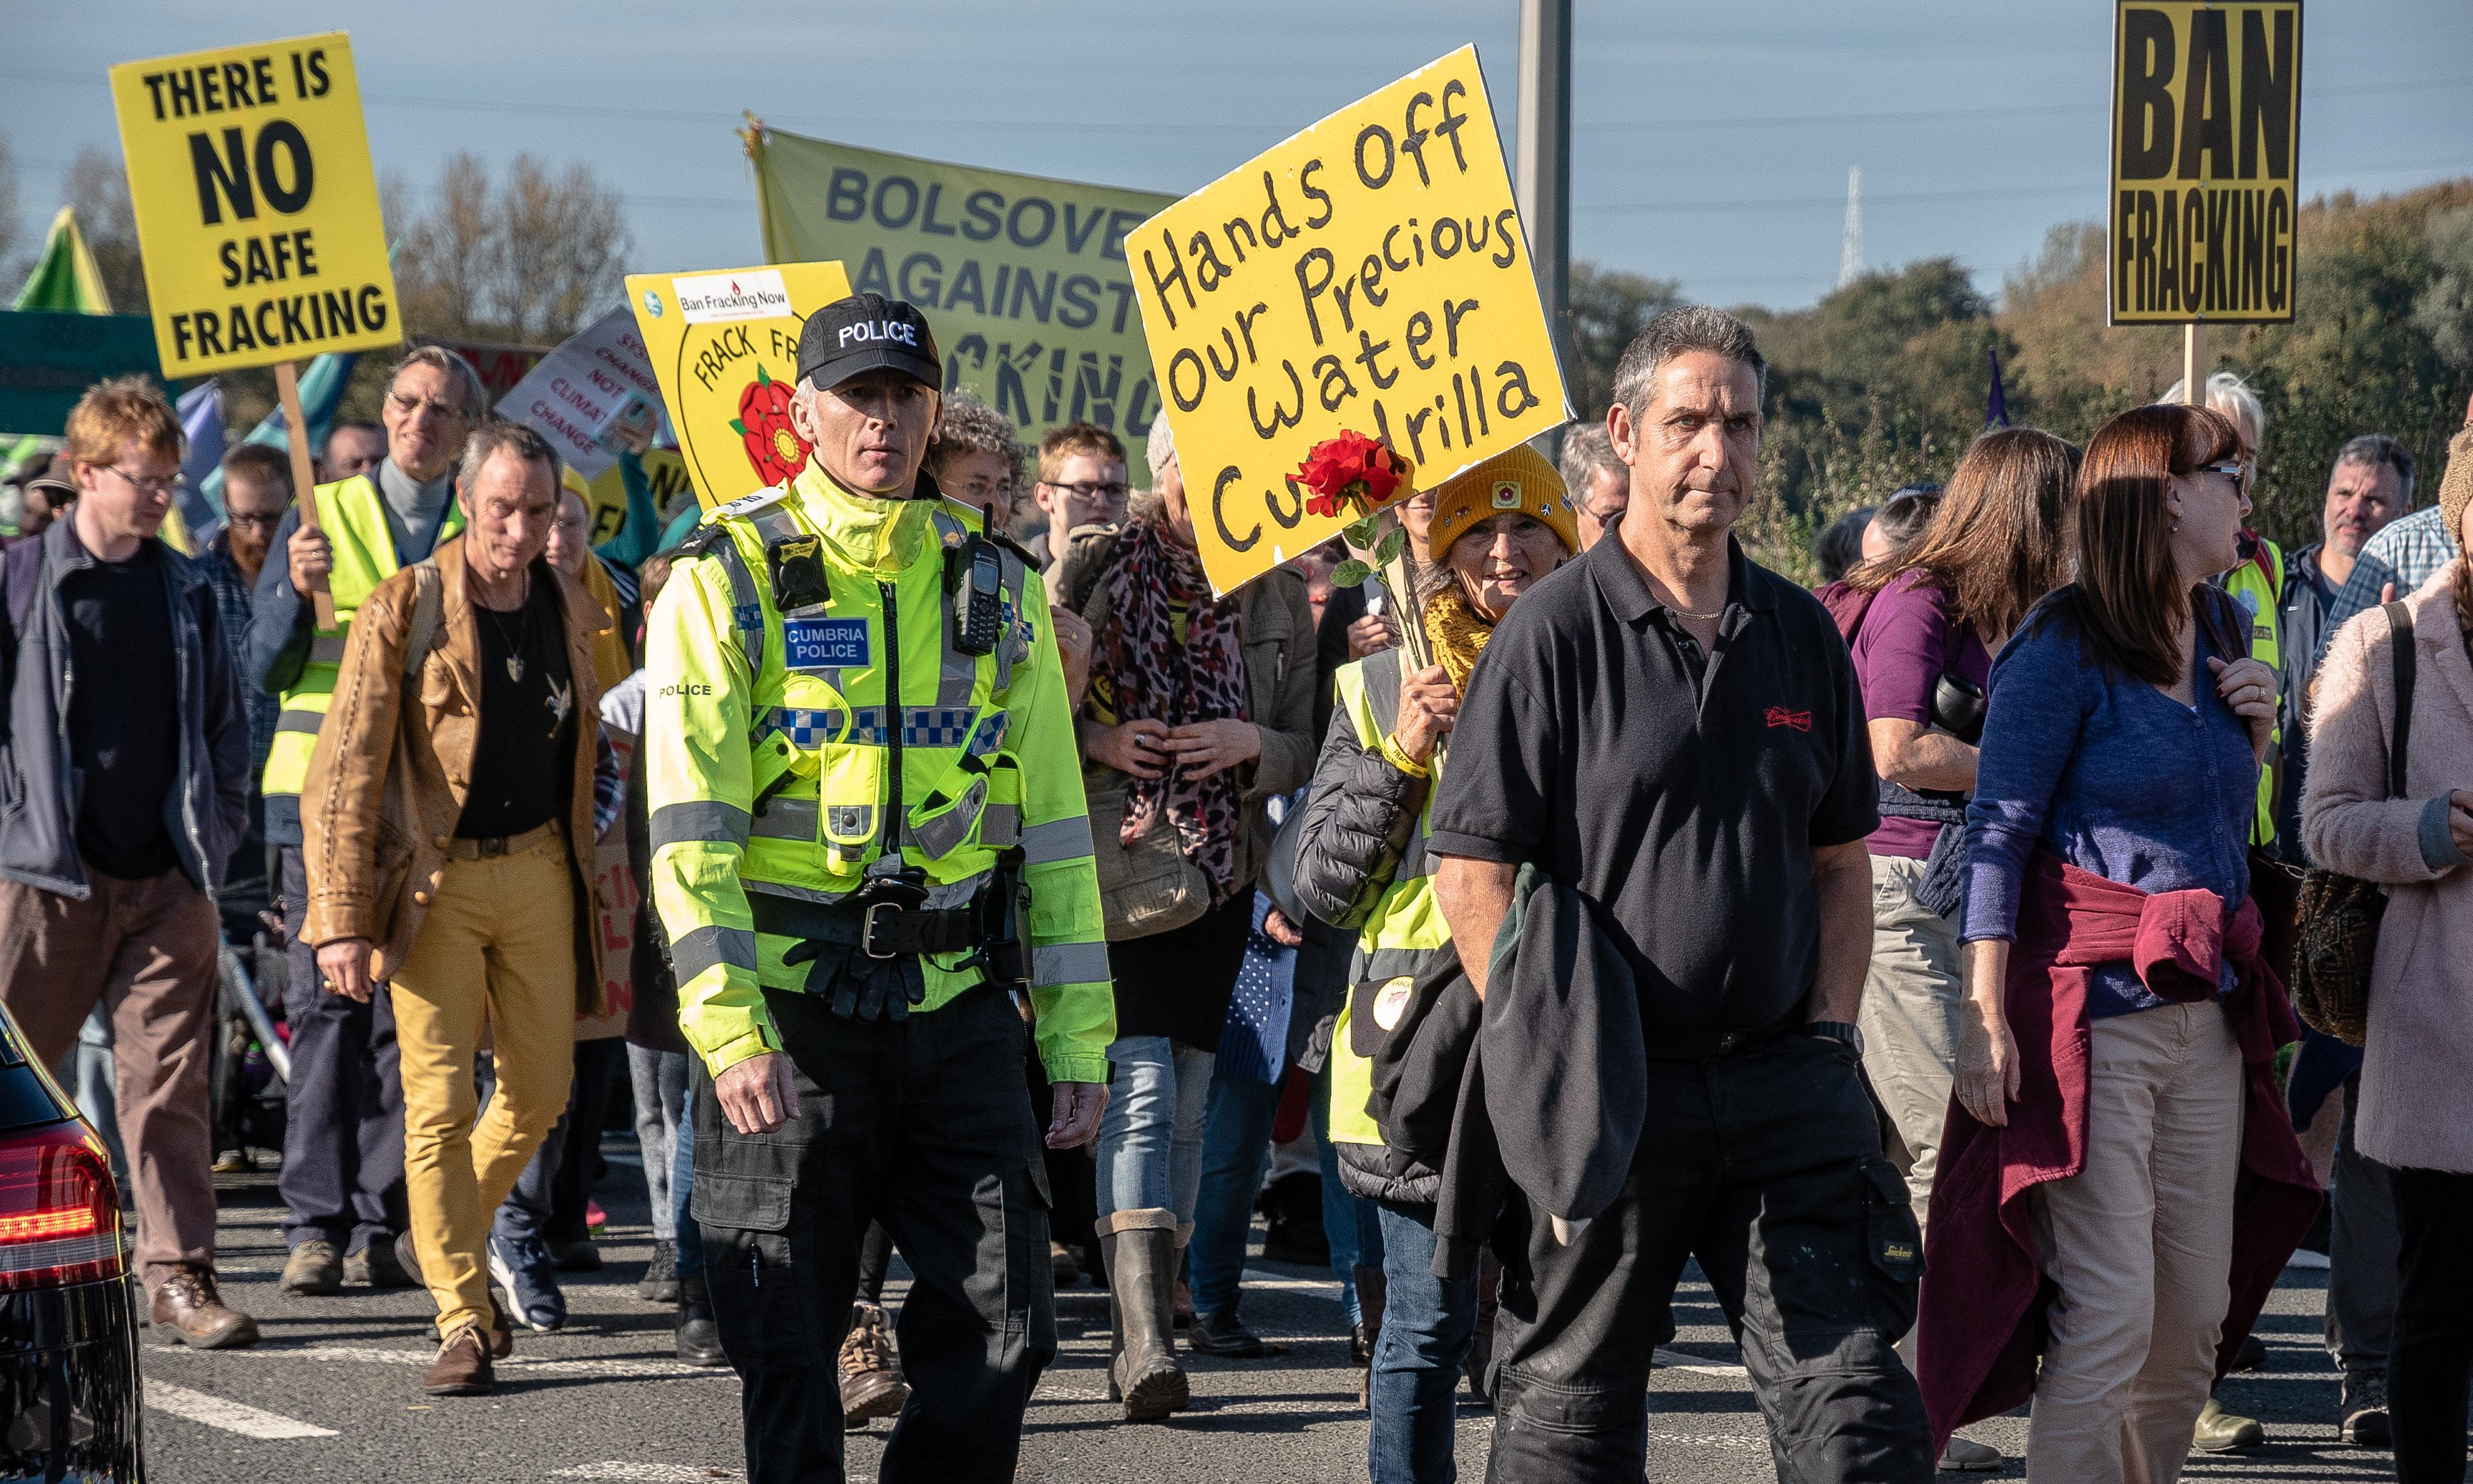 Campaigners urge UN to endorse global fracking ban